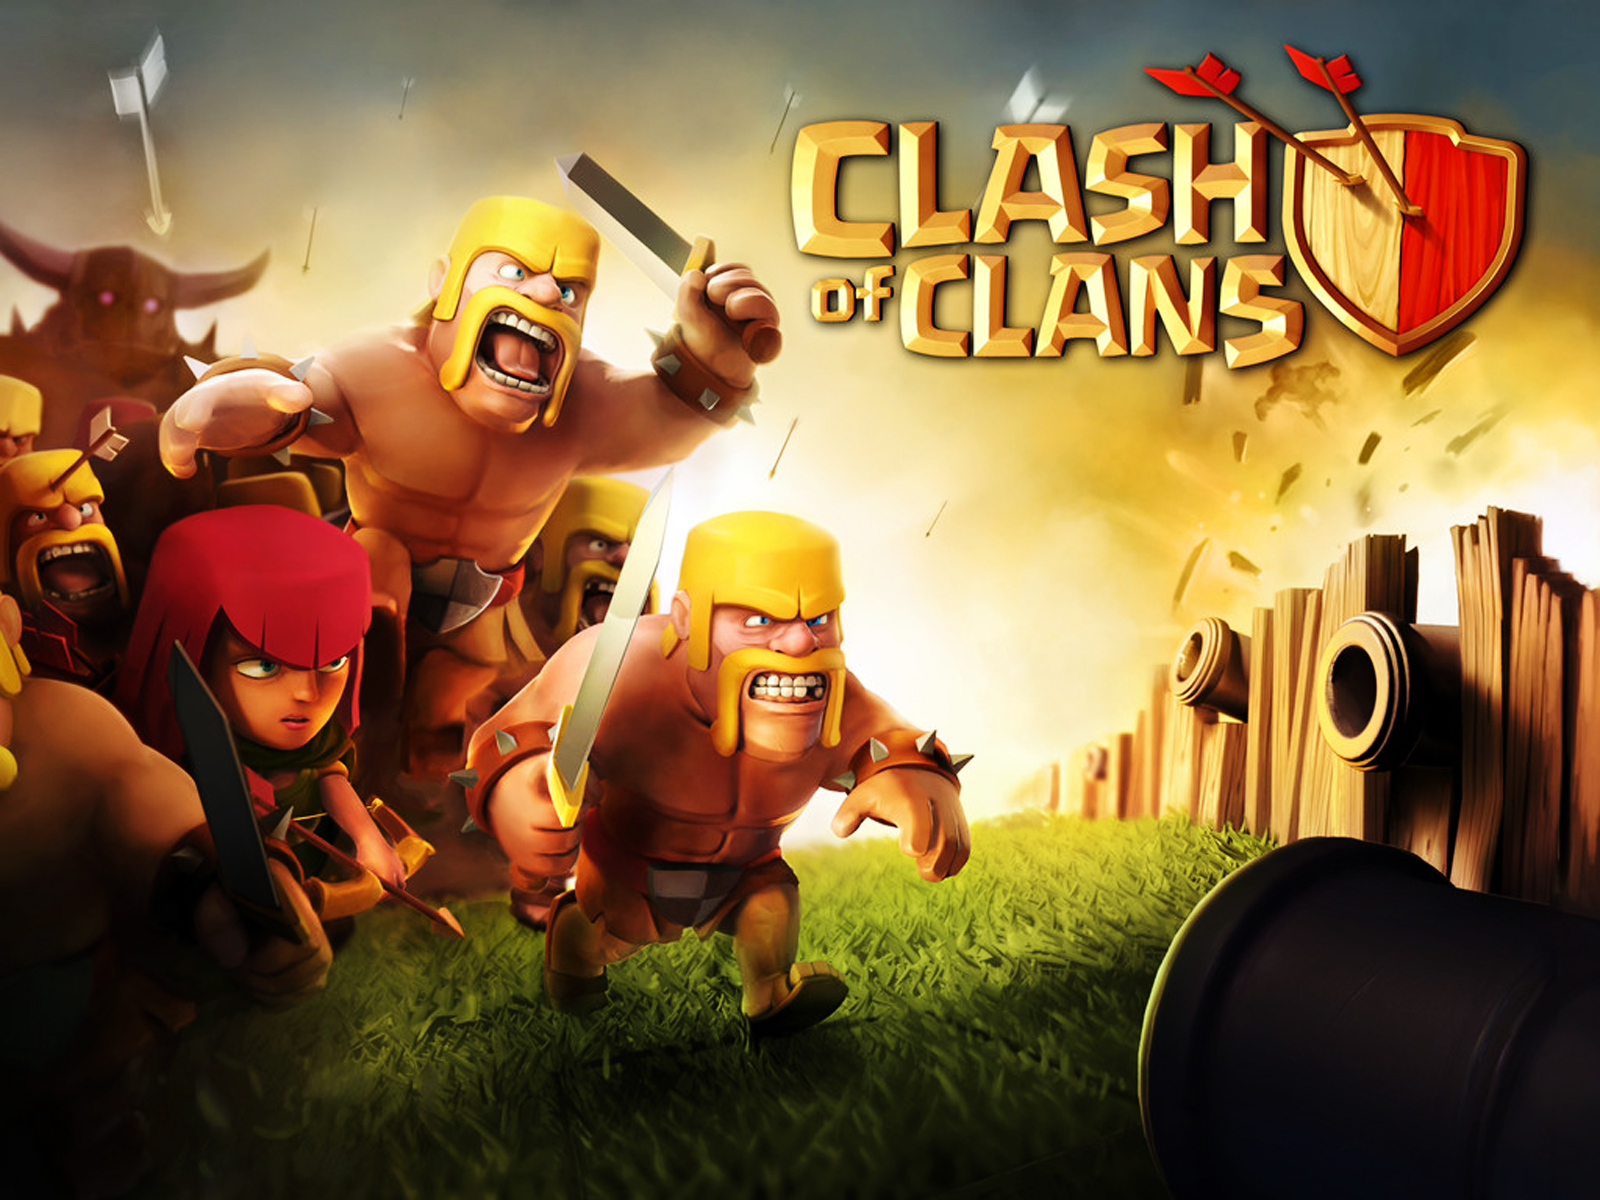 Supercell's Clash of Clans helps the company bring in $2.5M a day. Apple gets a third of that. Facebook gets nothing.